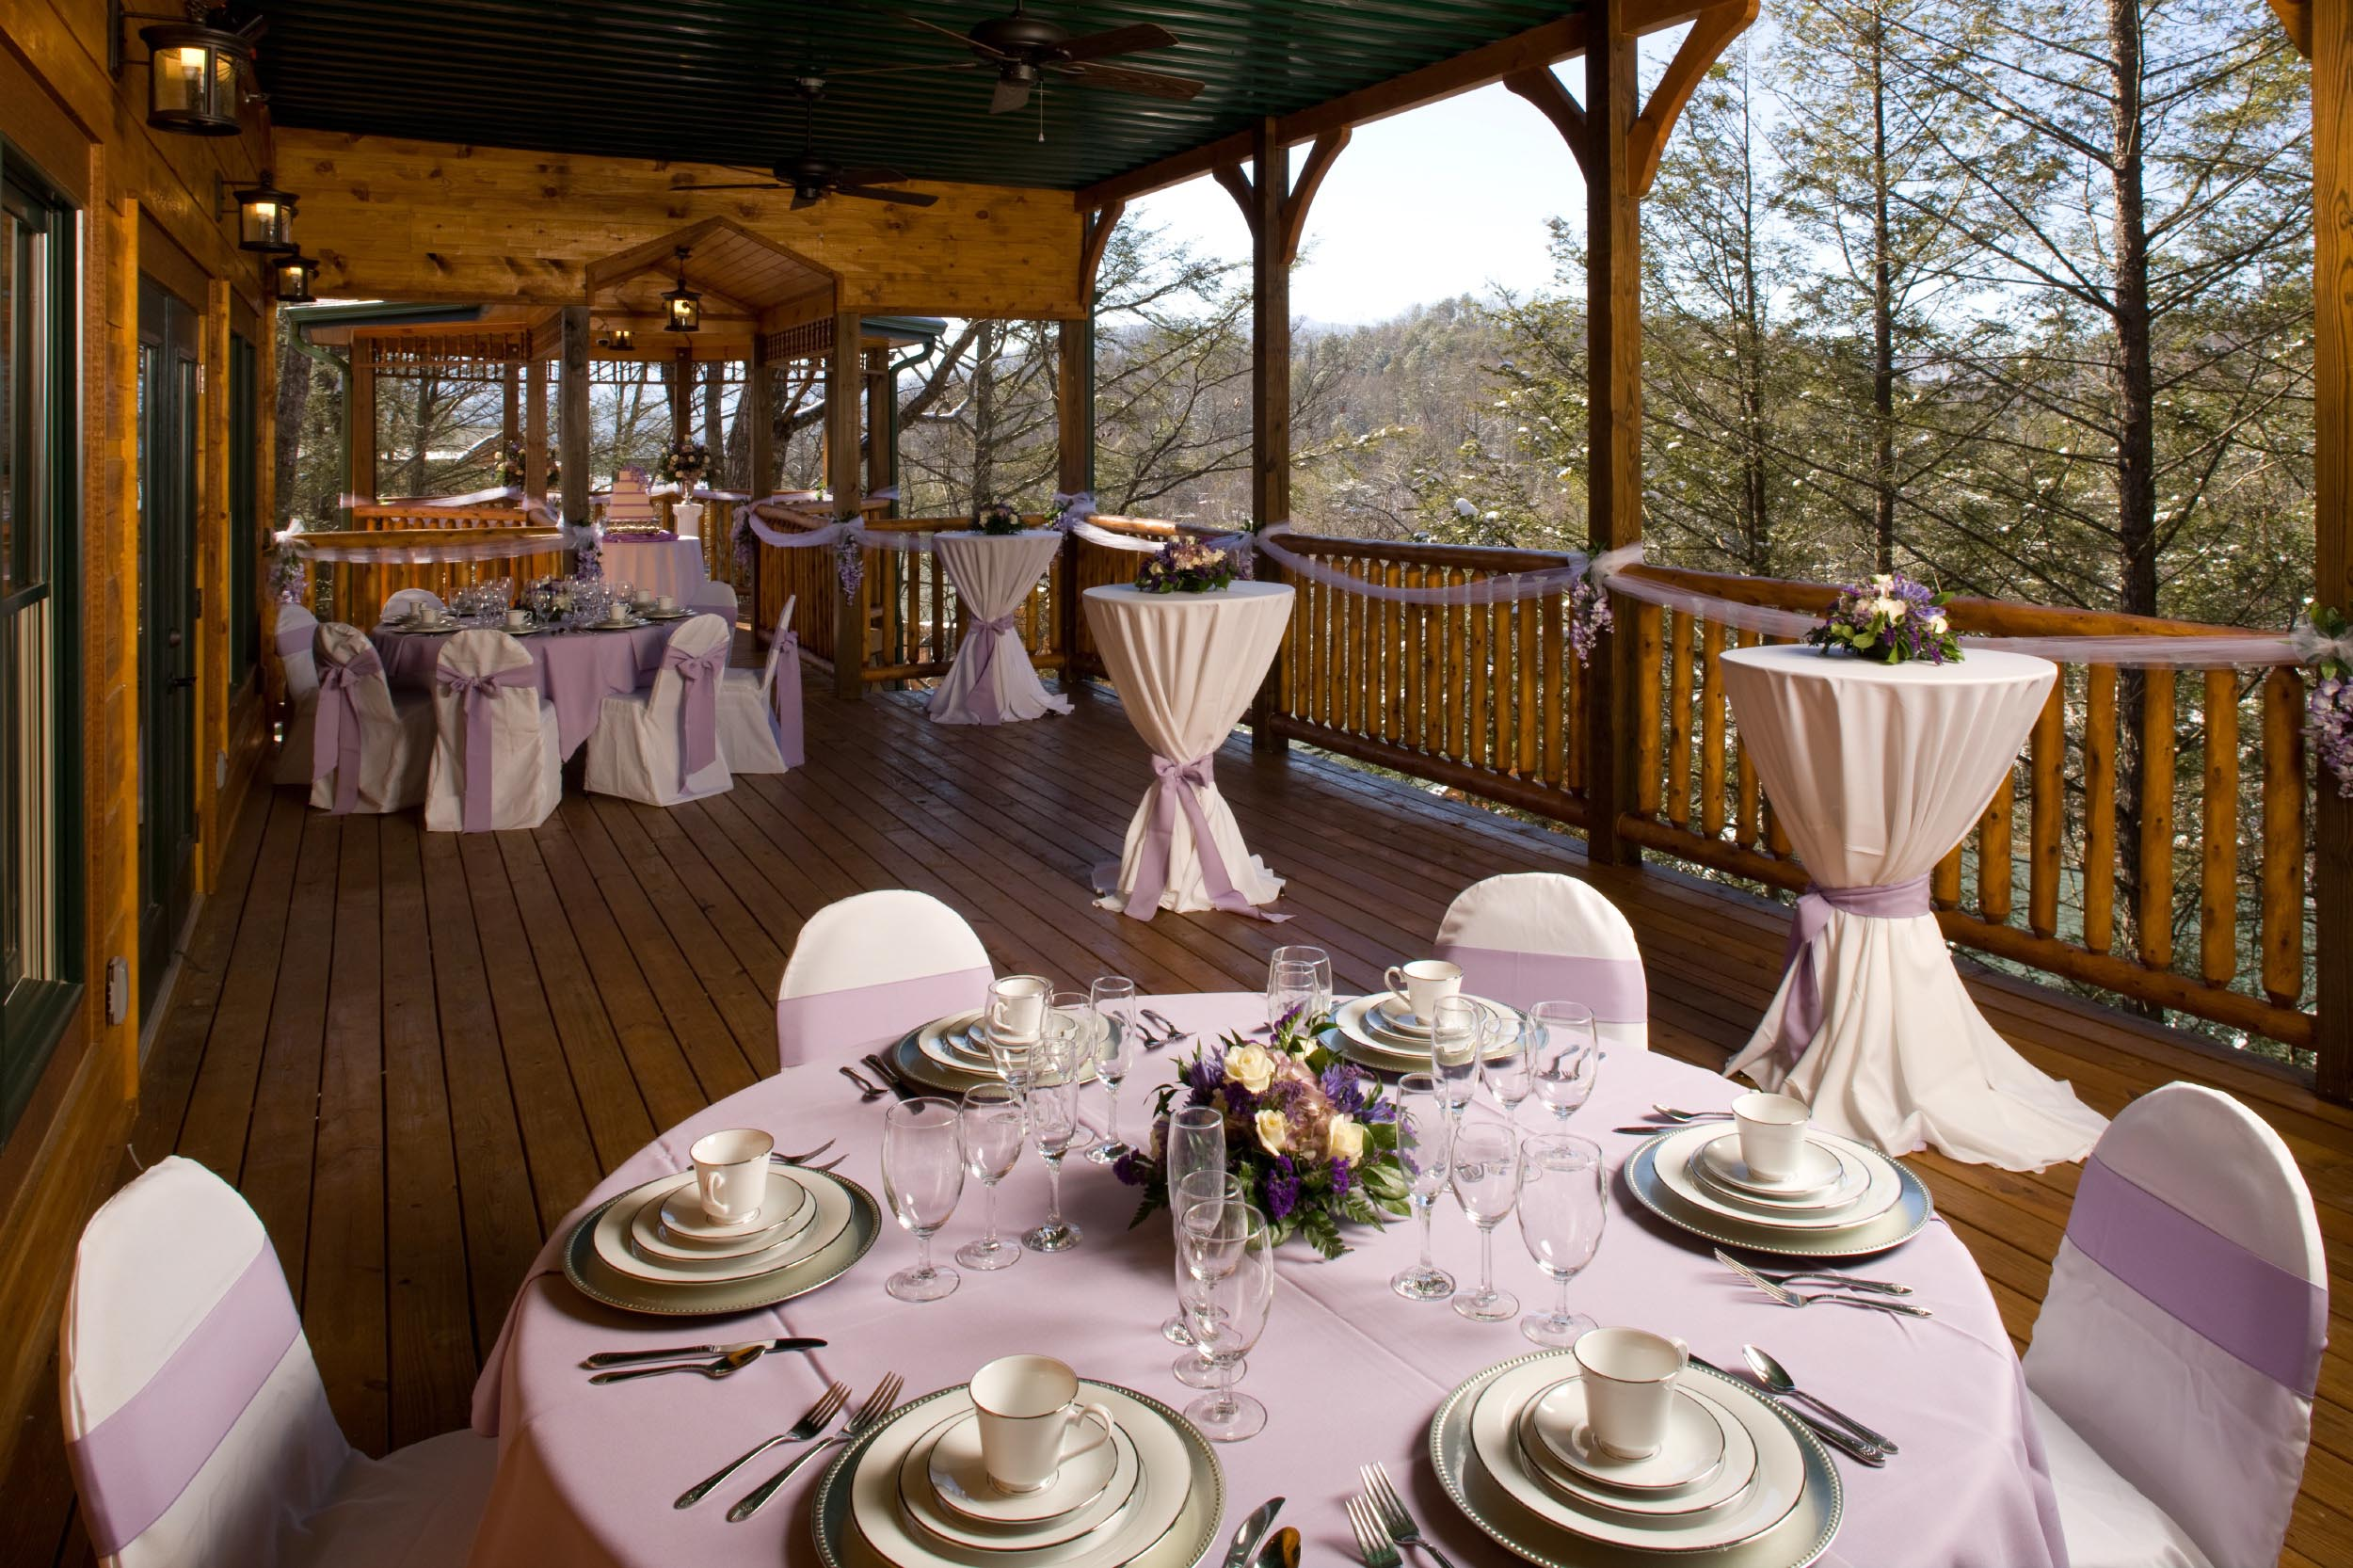 Gatlinburg Wedding Venues In The Great Smoky Mountains